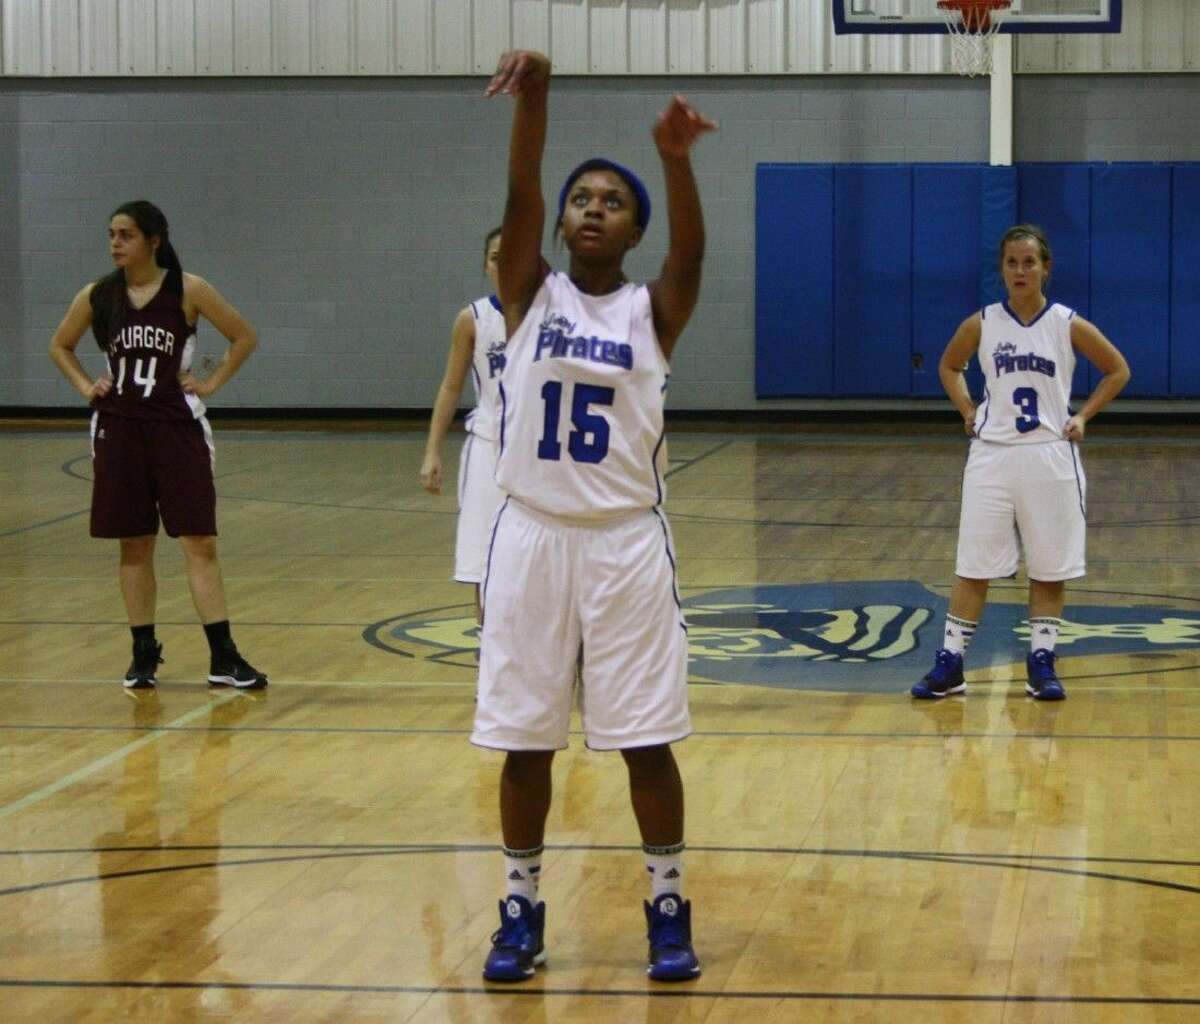 LaQuencia Martin (15) makes a free throw while Maddy McKithan (3) and Cassidy LeBouef (14) stand in place behind her.